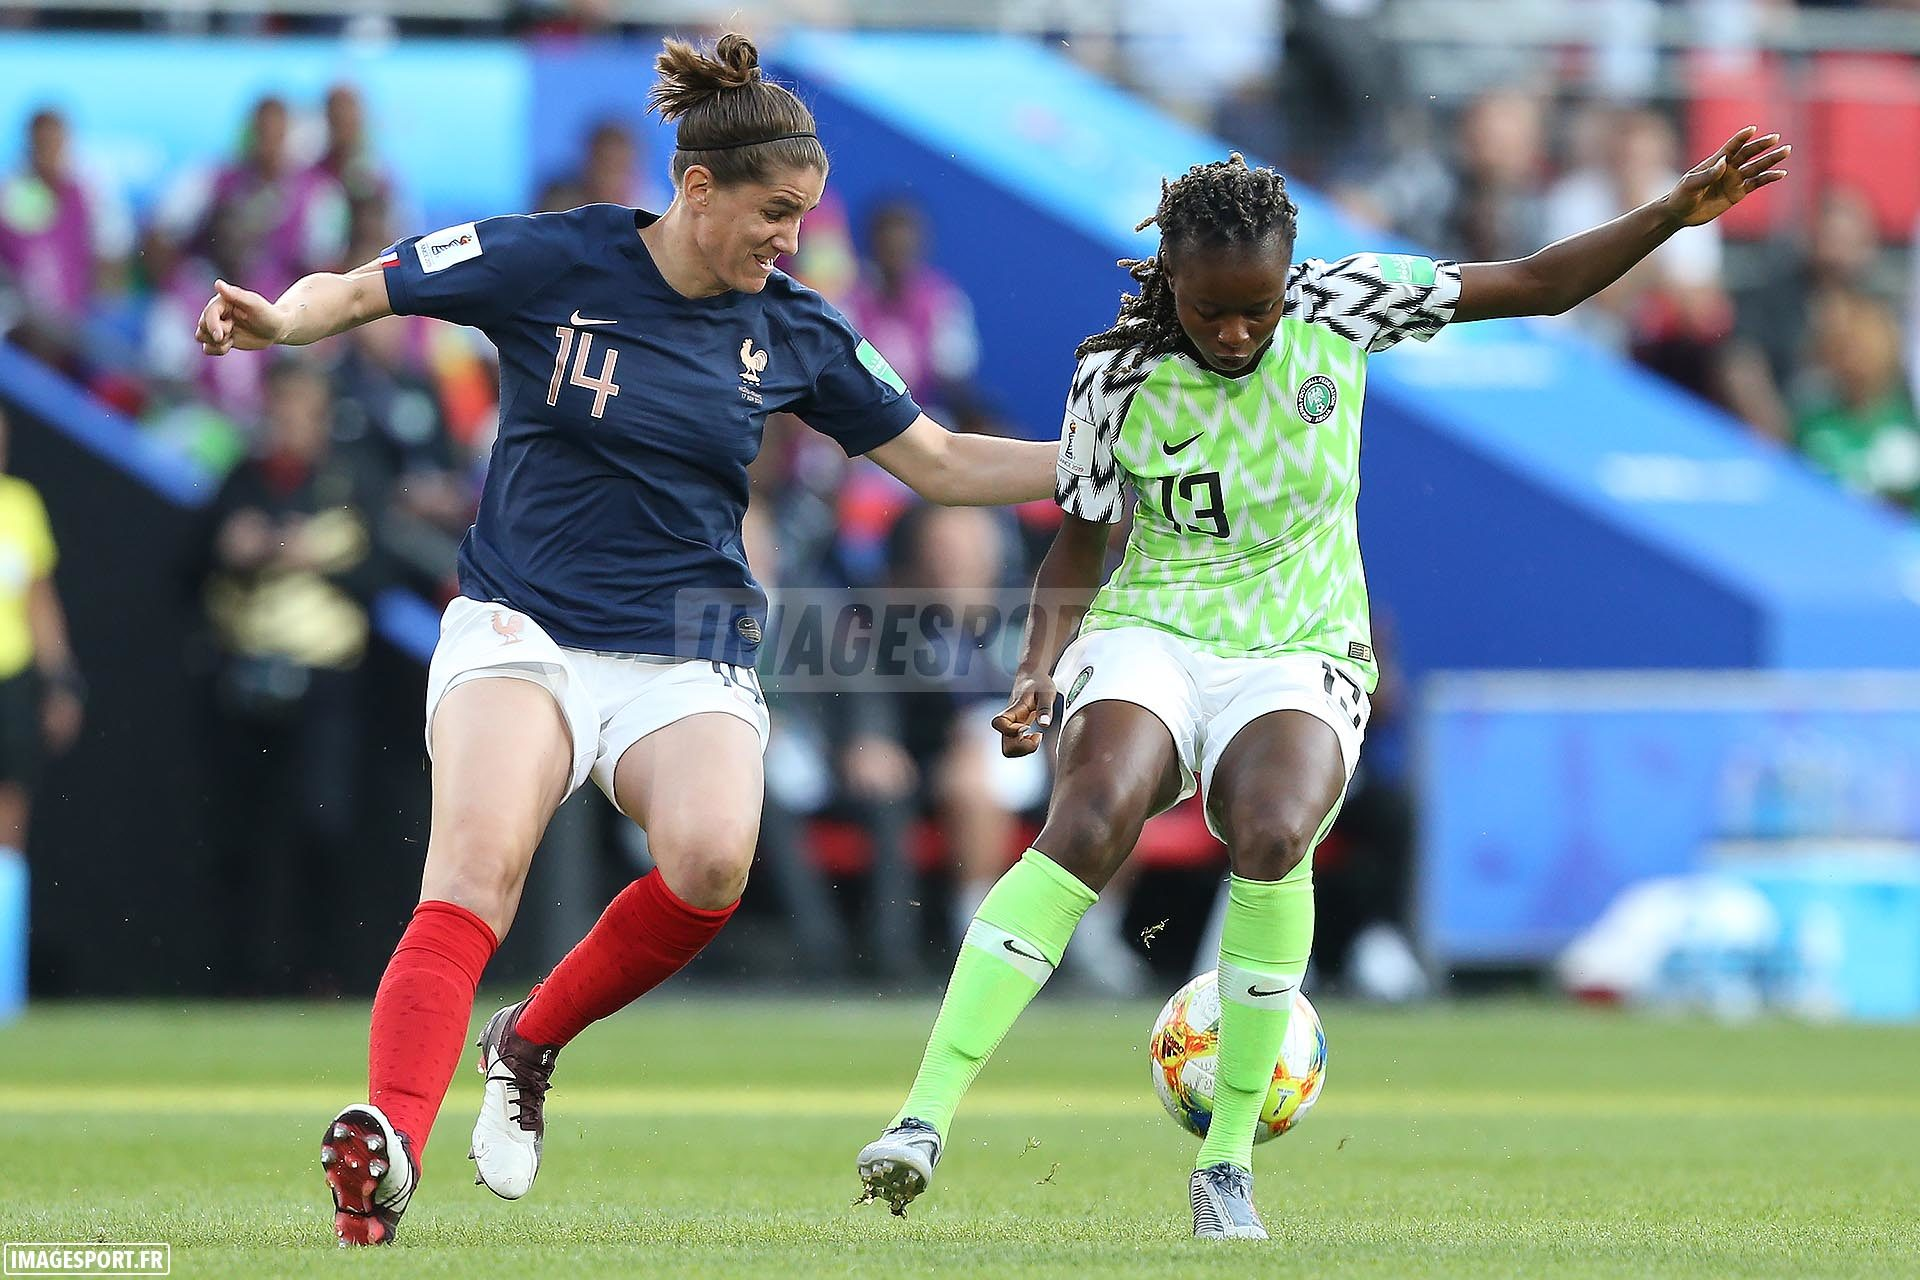 coupe-du-monde-19-nigeria-france_4